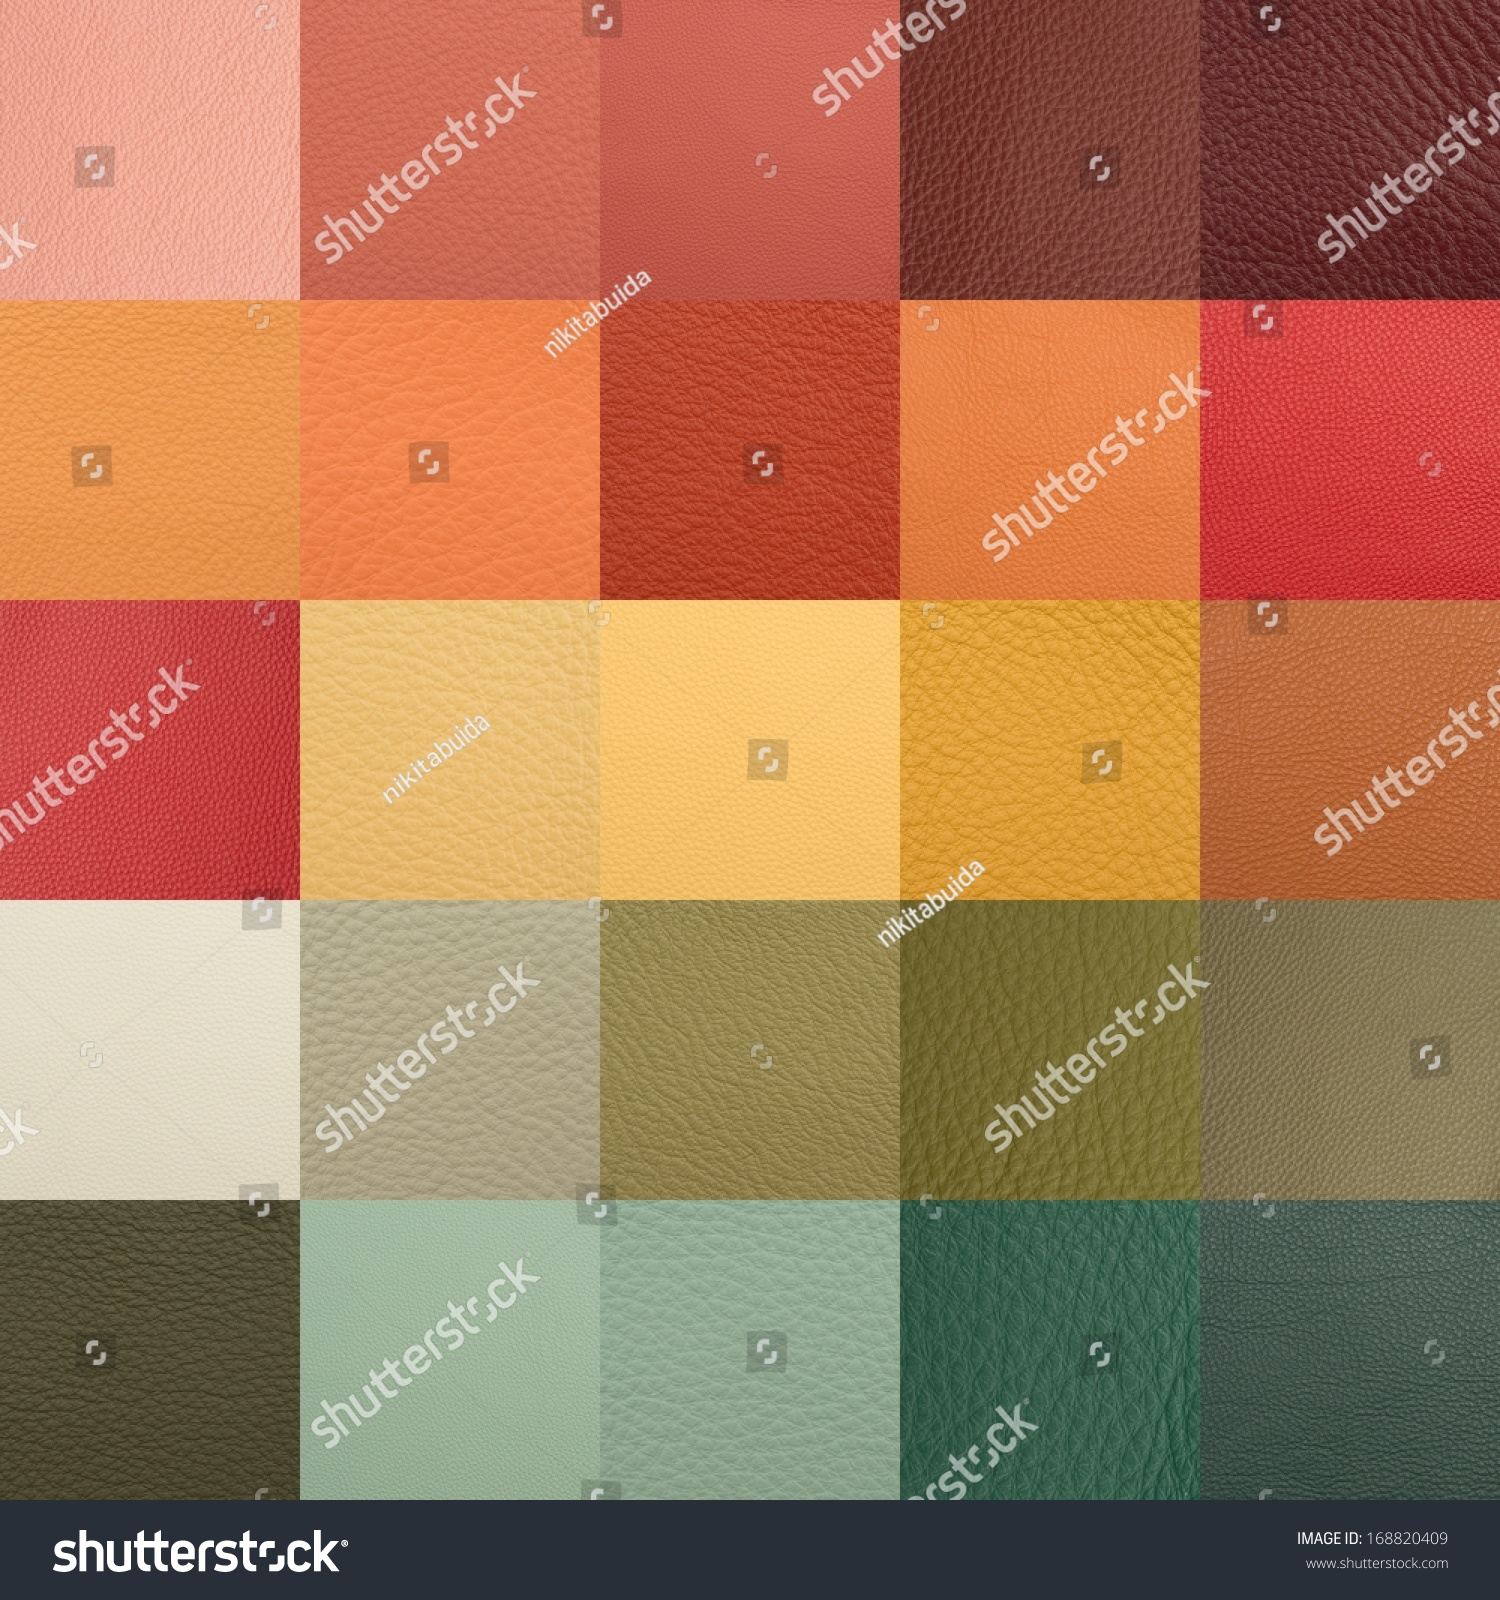 Leather Chart Many Color Texture Samples Stock Photo (Royalty Free ...